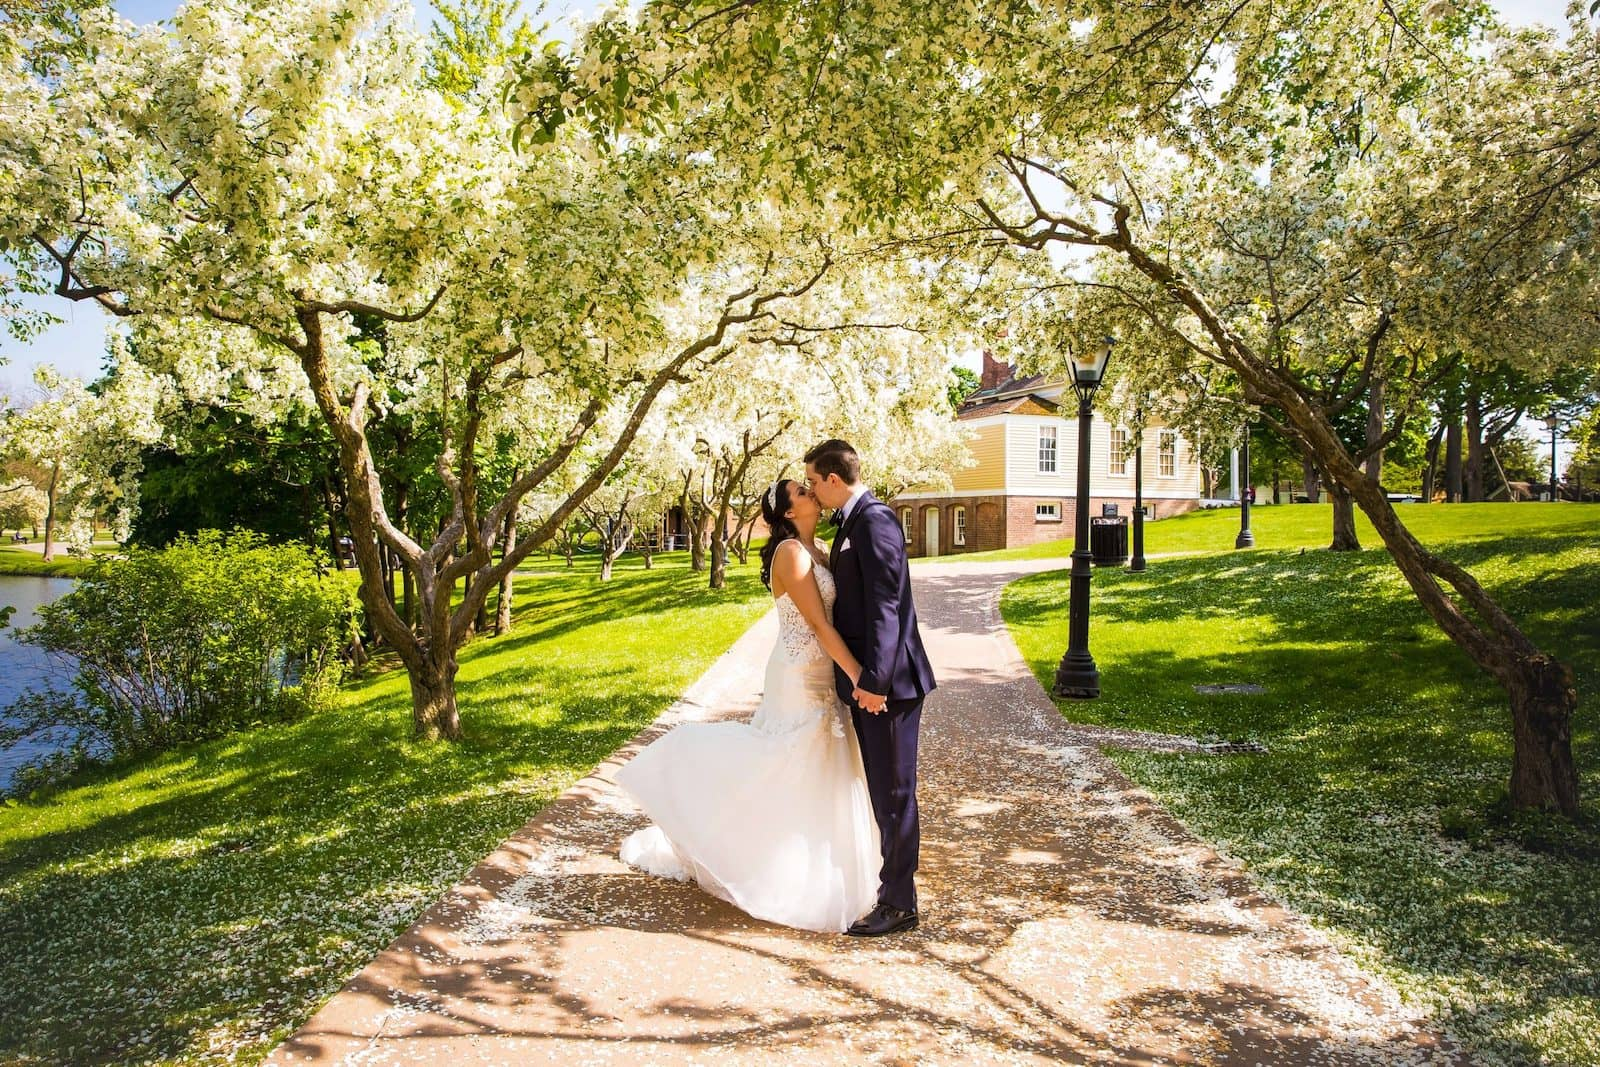 bride and groom kissing on path at greenfield village